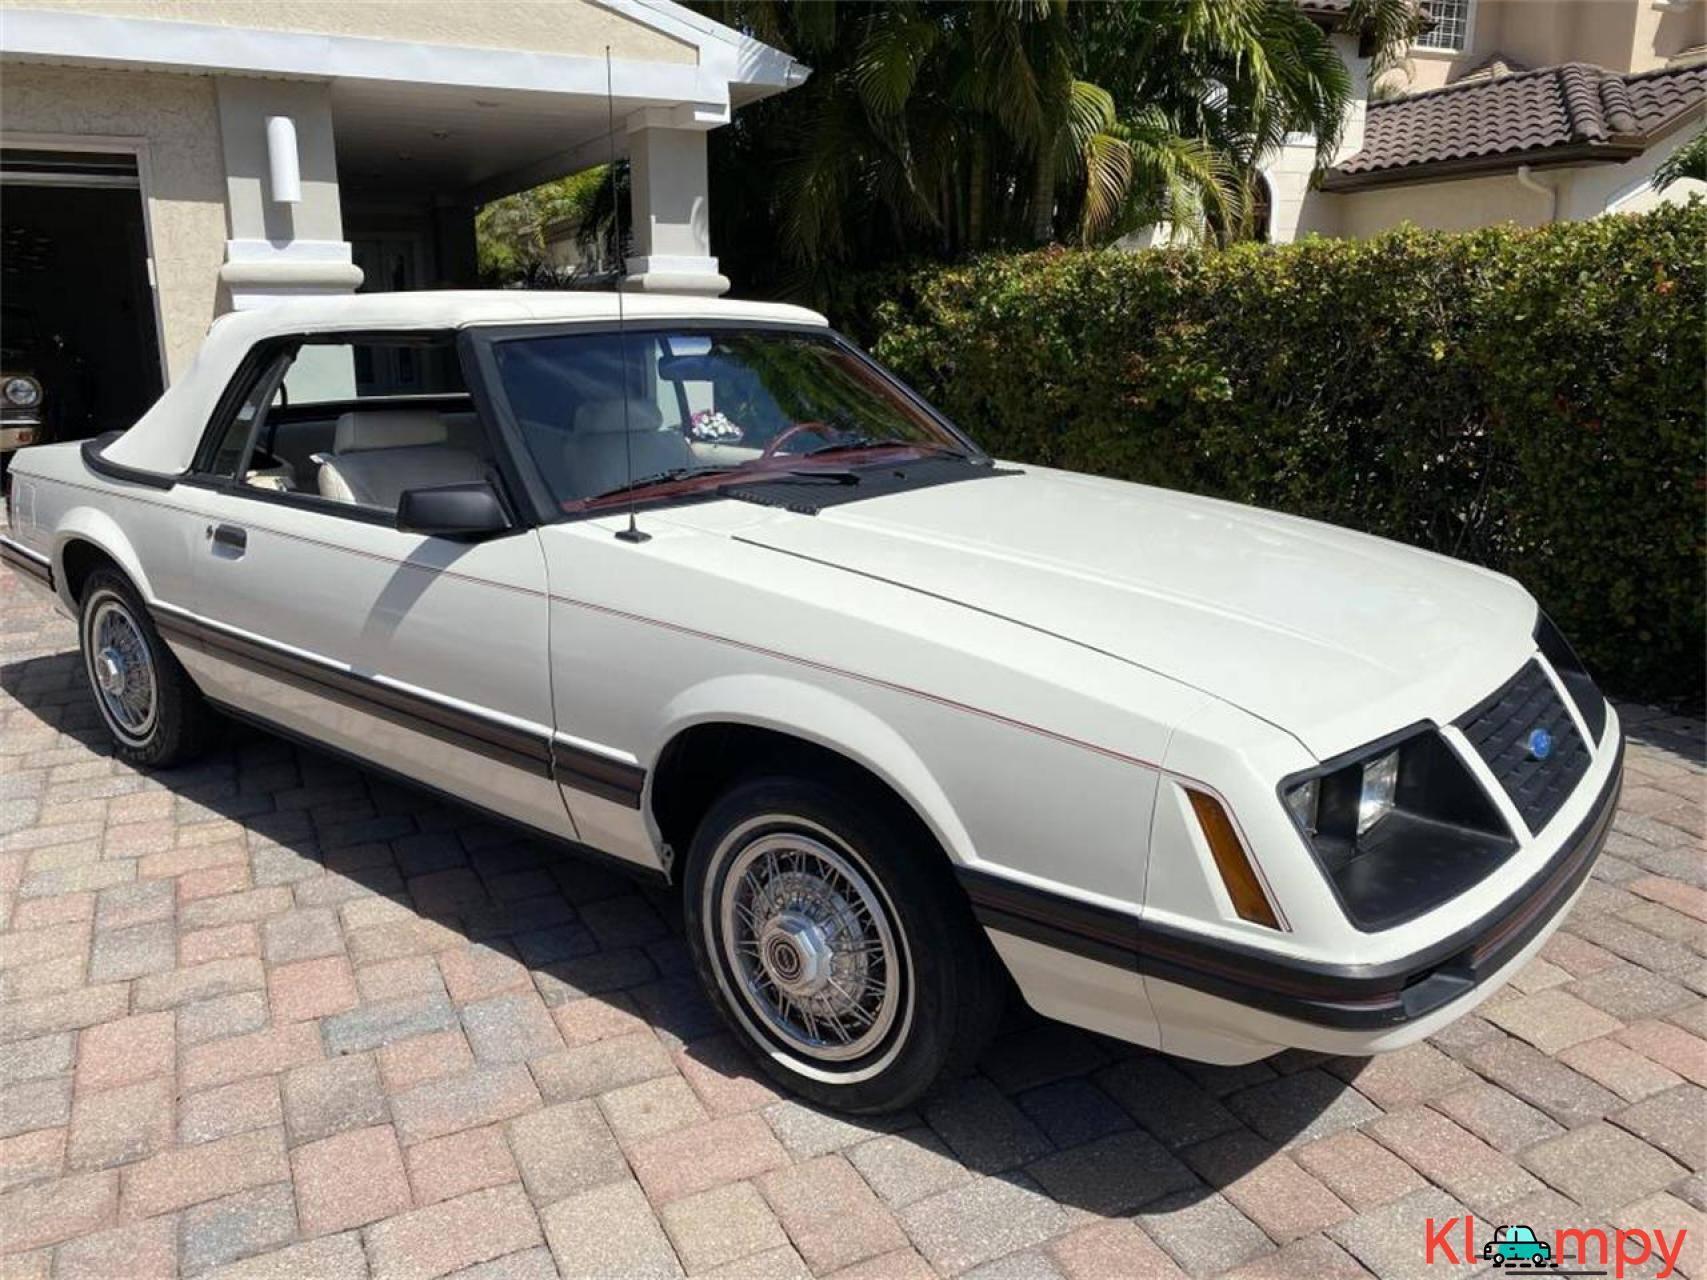 1983 Ford Mustang 3.8 LITRE V6 AUTO - 1/20